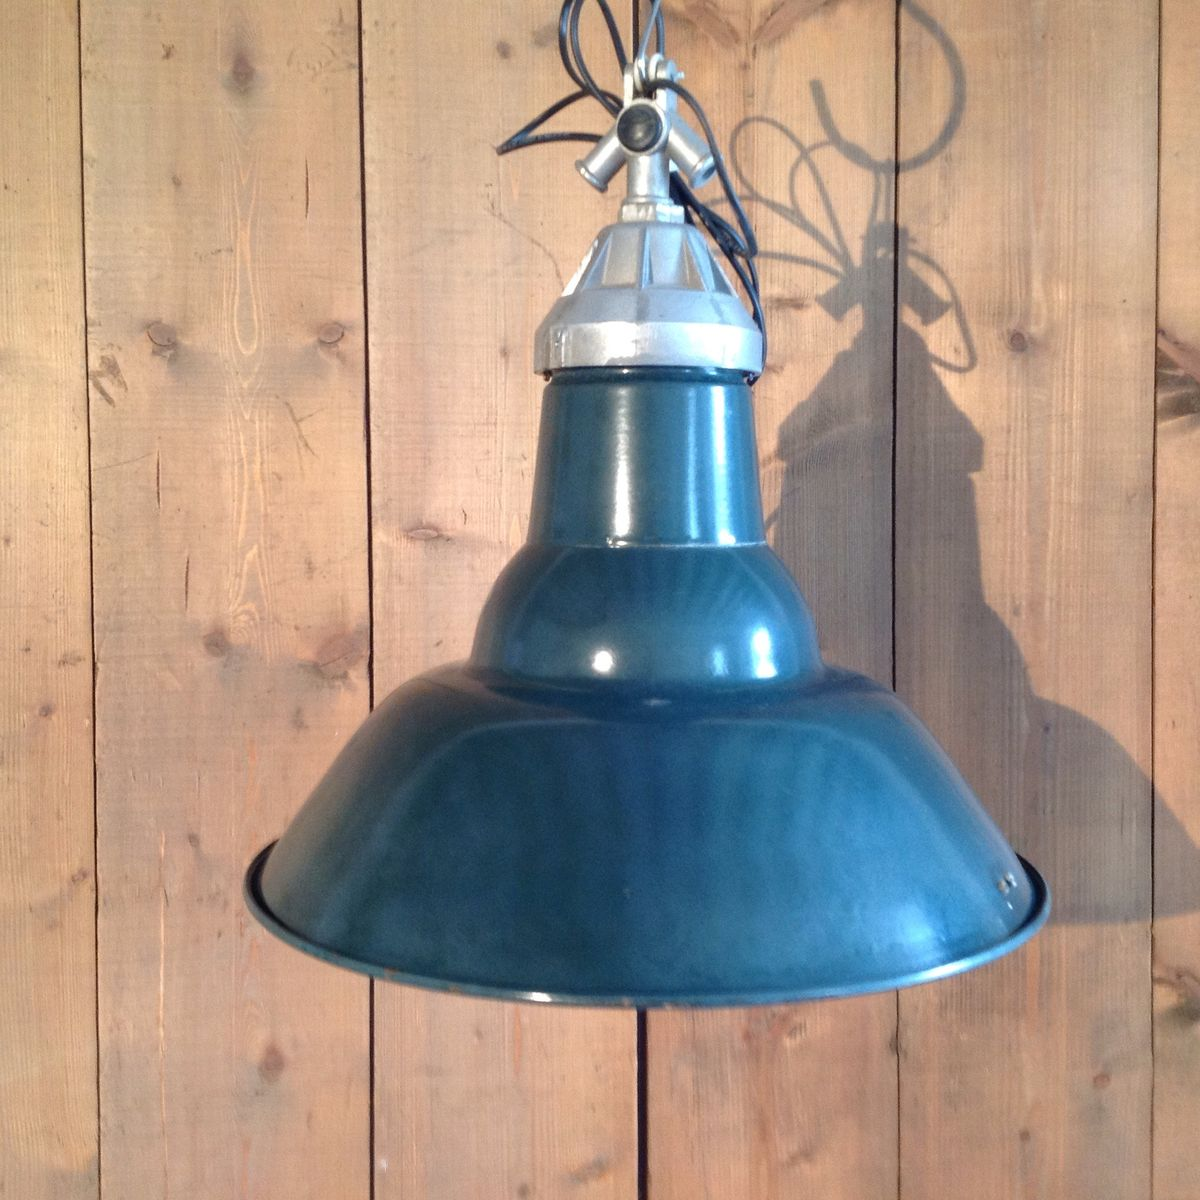 Vintage french industrial suspension light for sale at pamono - Suspension vintage industriel ...